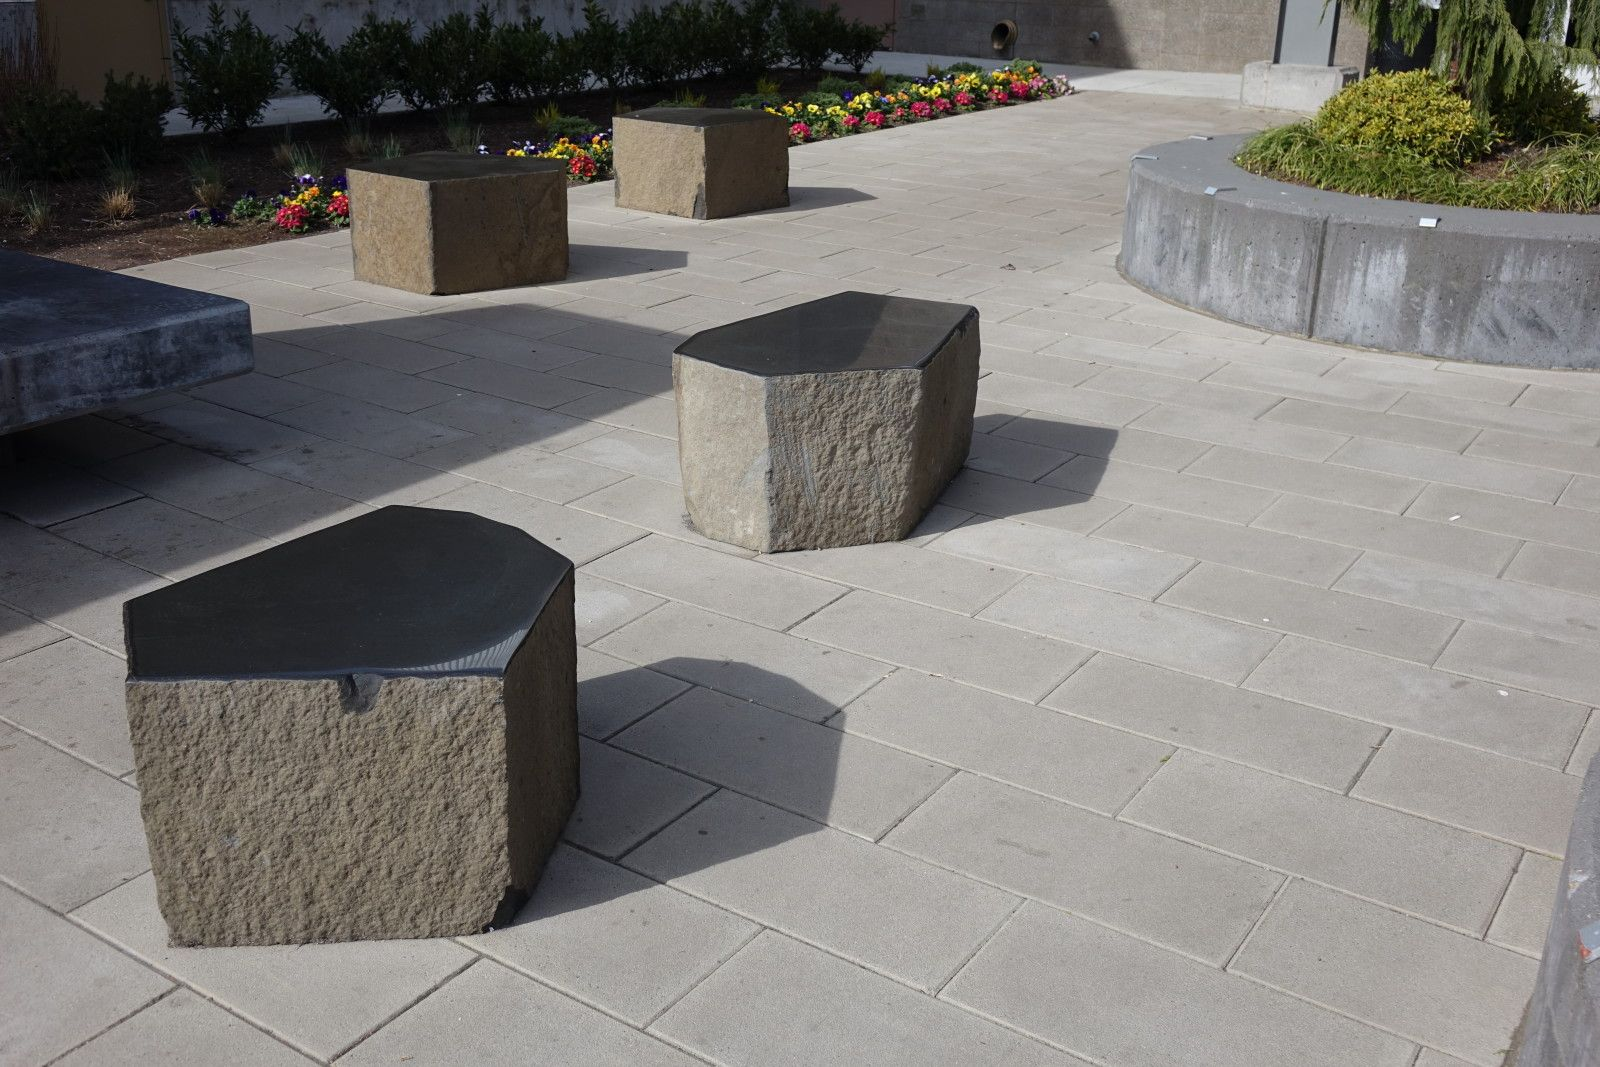 Vancouver Bay Architectural Slabs Mutual Materials Patio Pavers Design Pavers Backyard Paver Patio